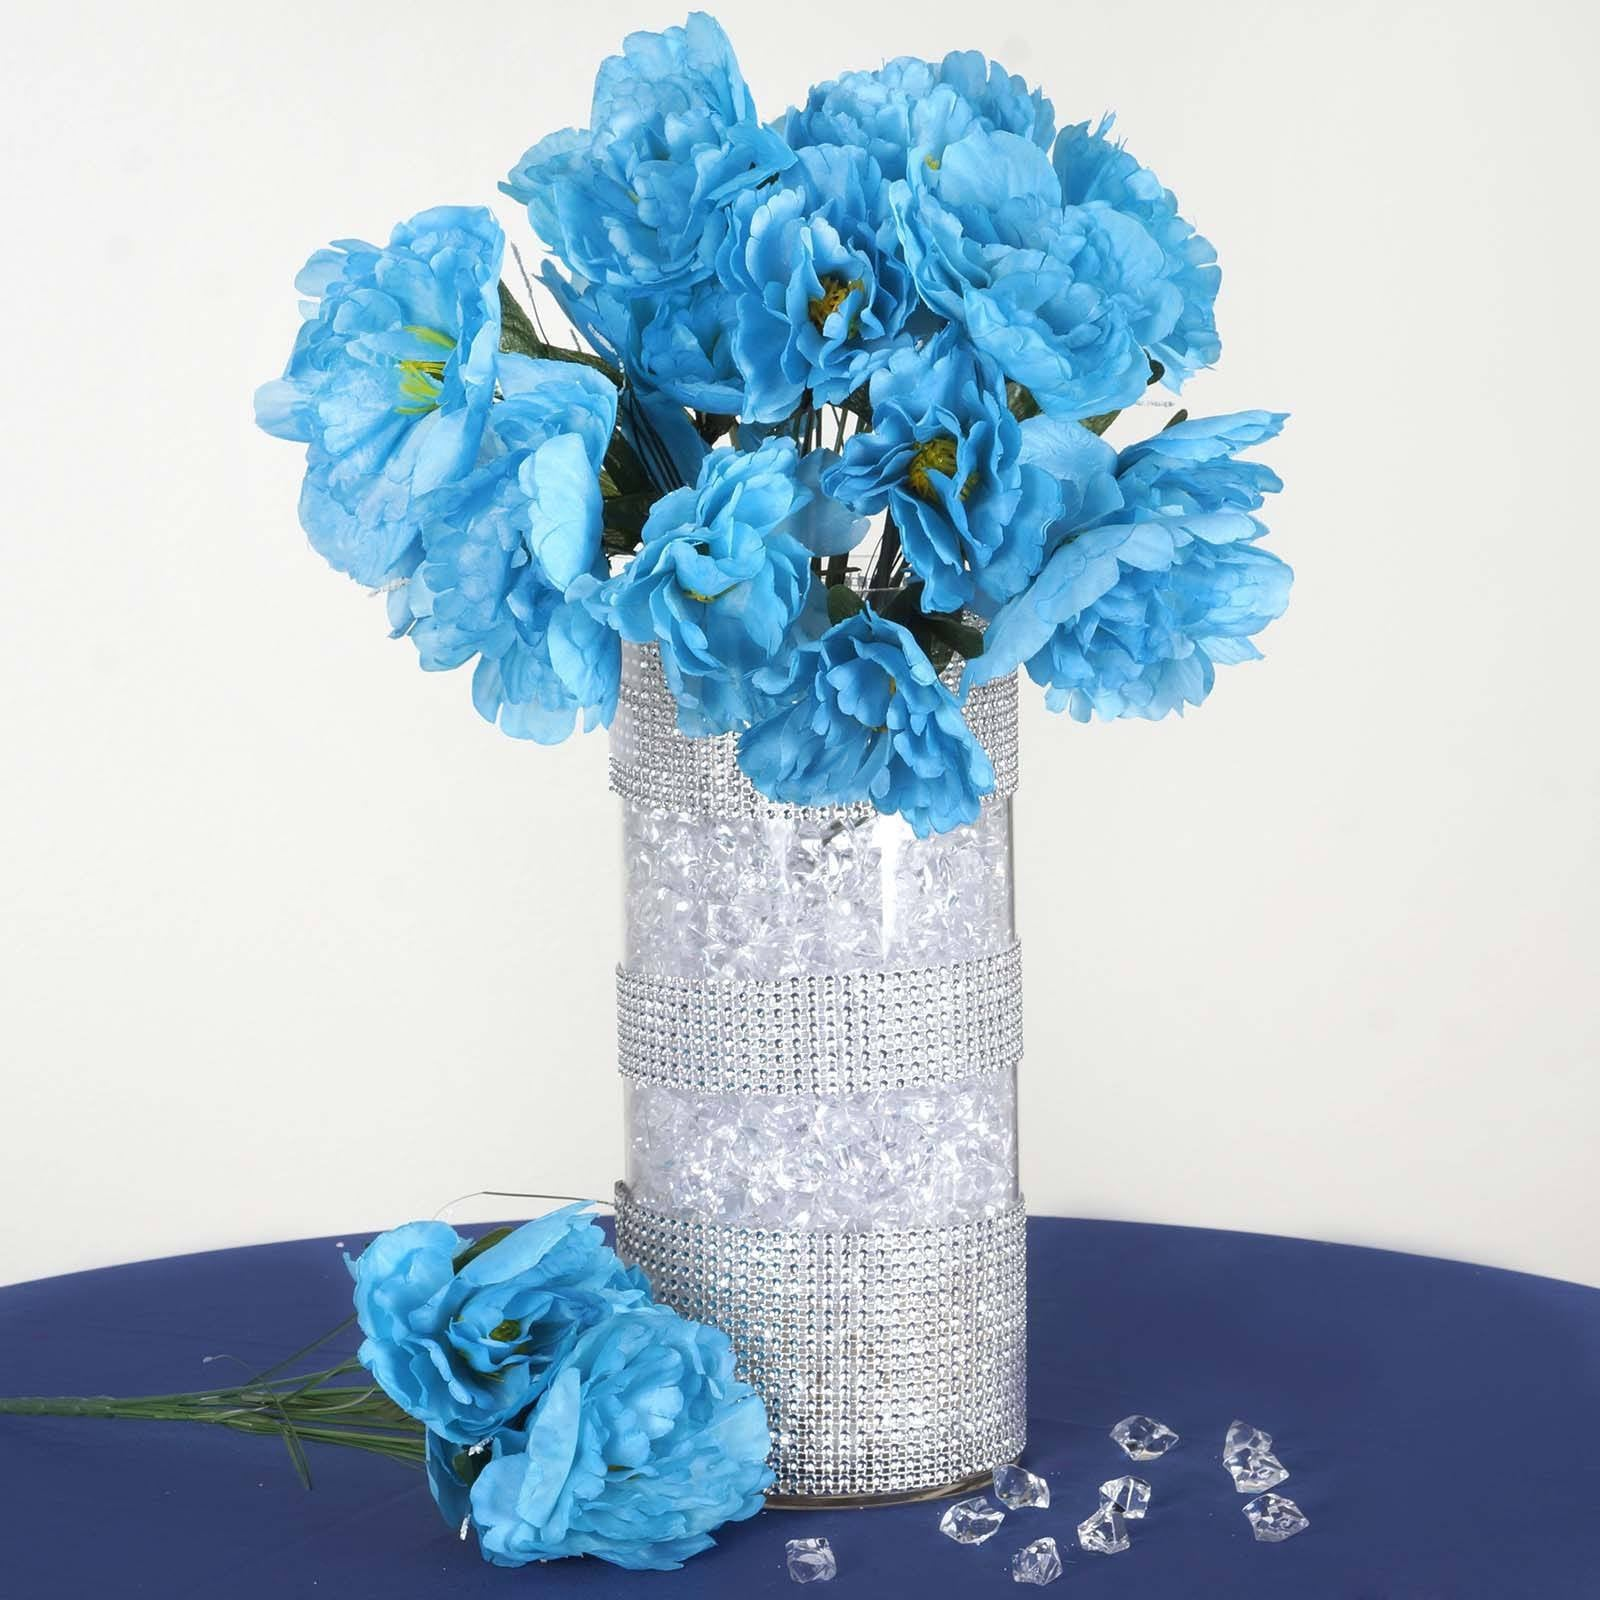 60 Turquoise Artificial Peony Bridal Bouquet Silk Flowers - 12 ...